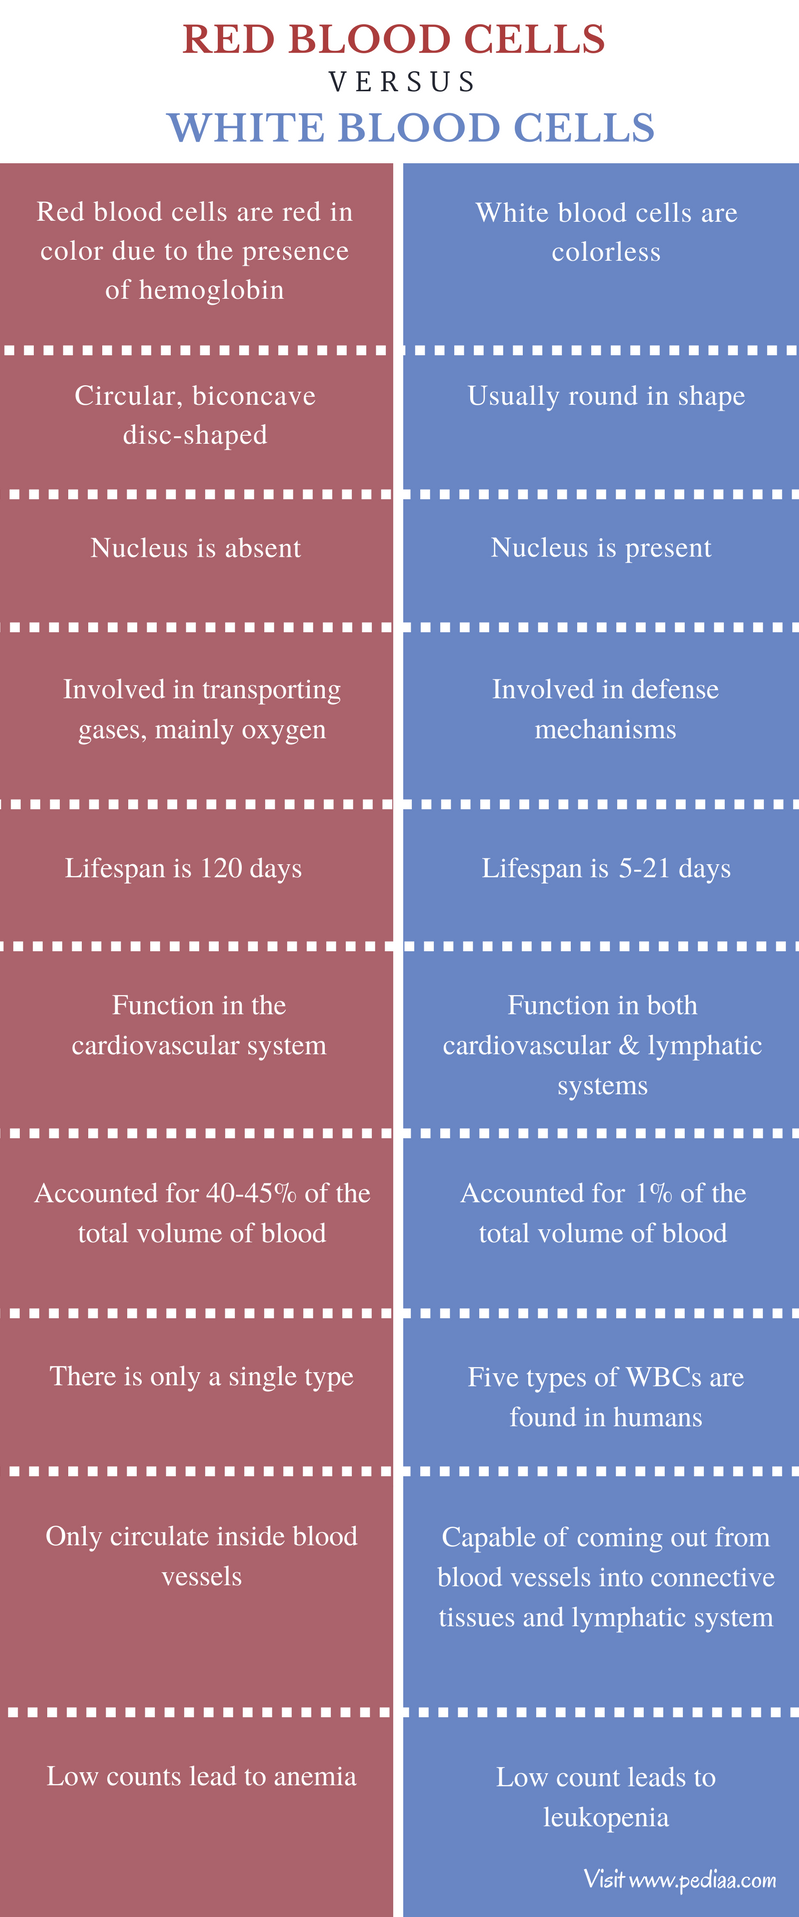 Difference Between Red Blood Cells and White Blood Cells - Comparison Summary